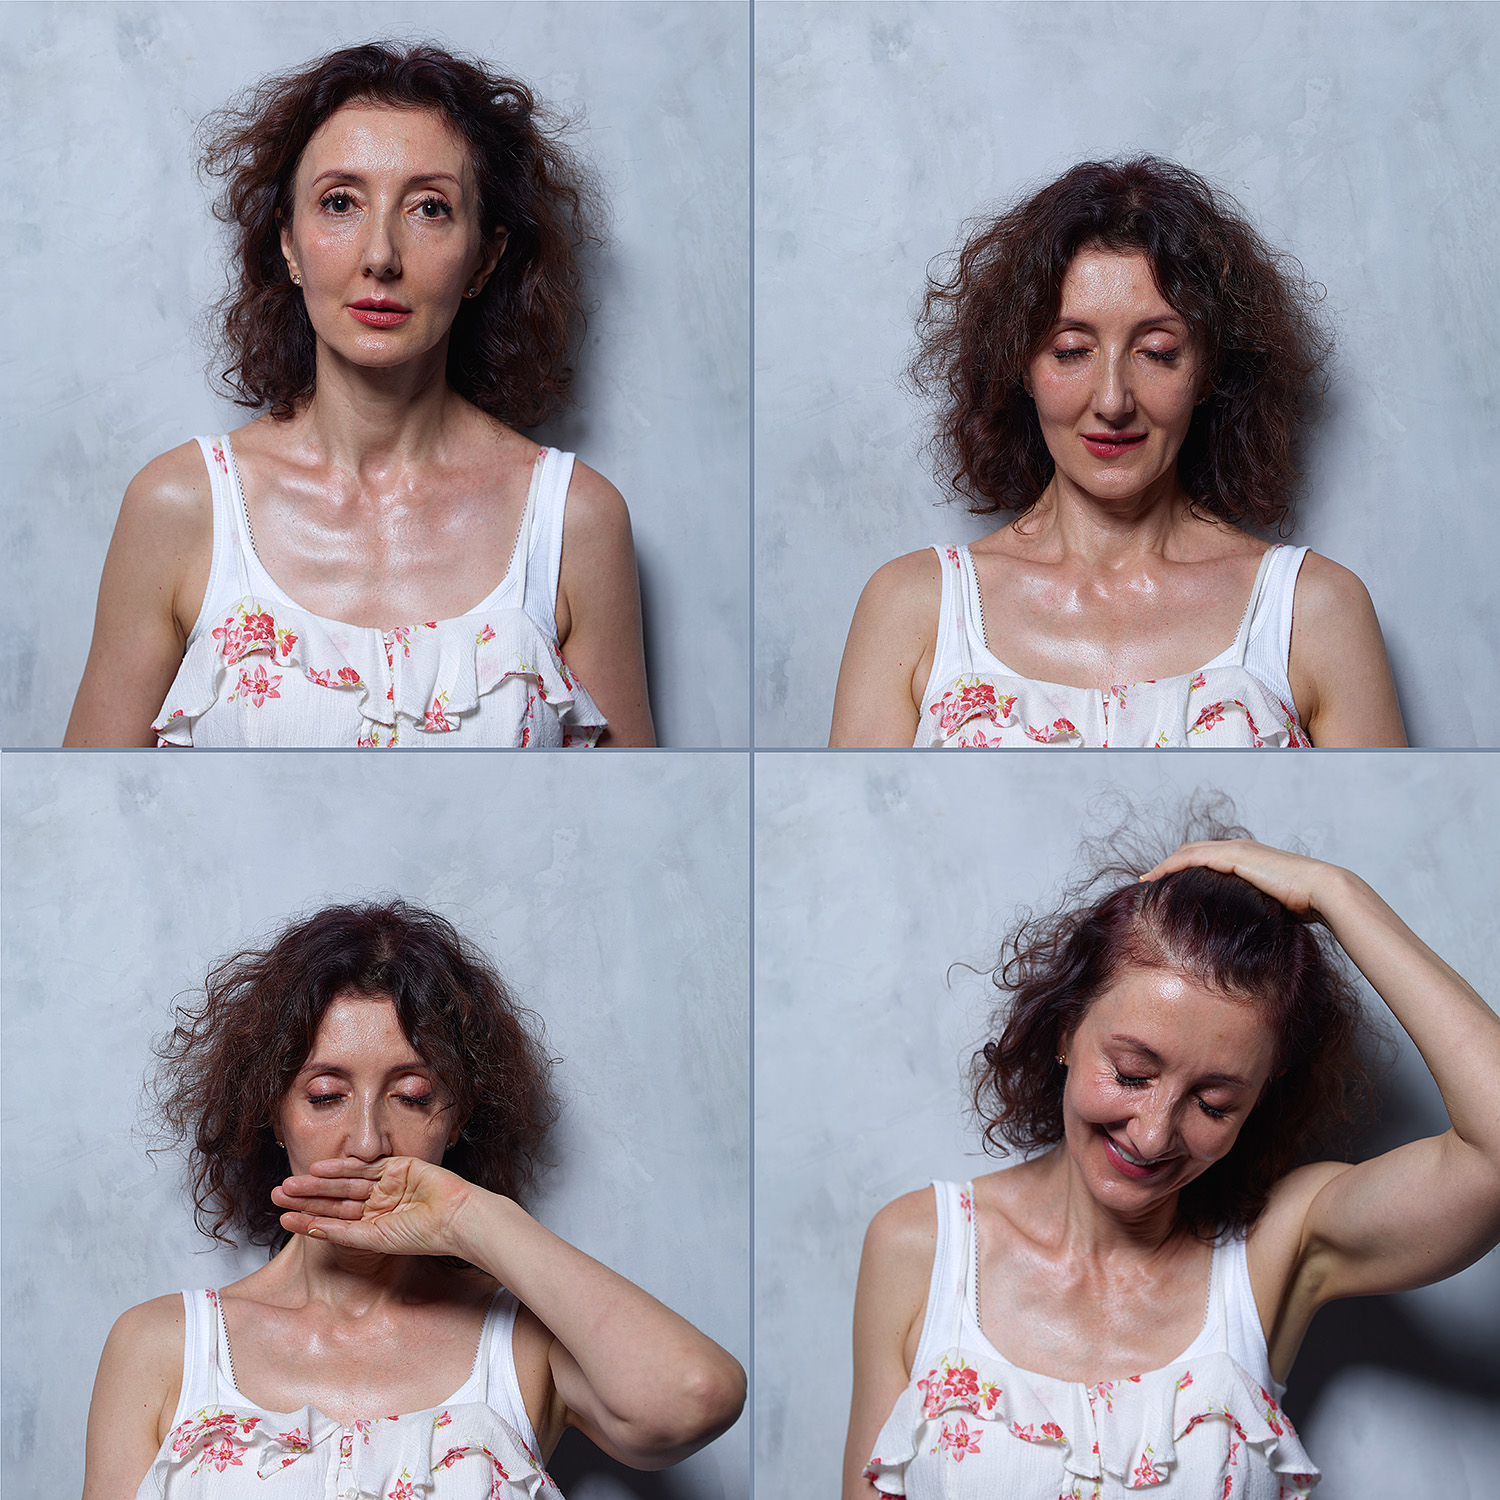 BREAKING DOWN THE BARRIERS OF FEMALE SEXUAL WELL-BEING Photographer,  Alberti, captures facial expressions of women having orgasms